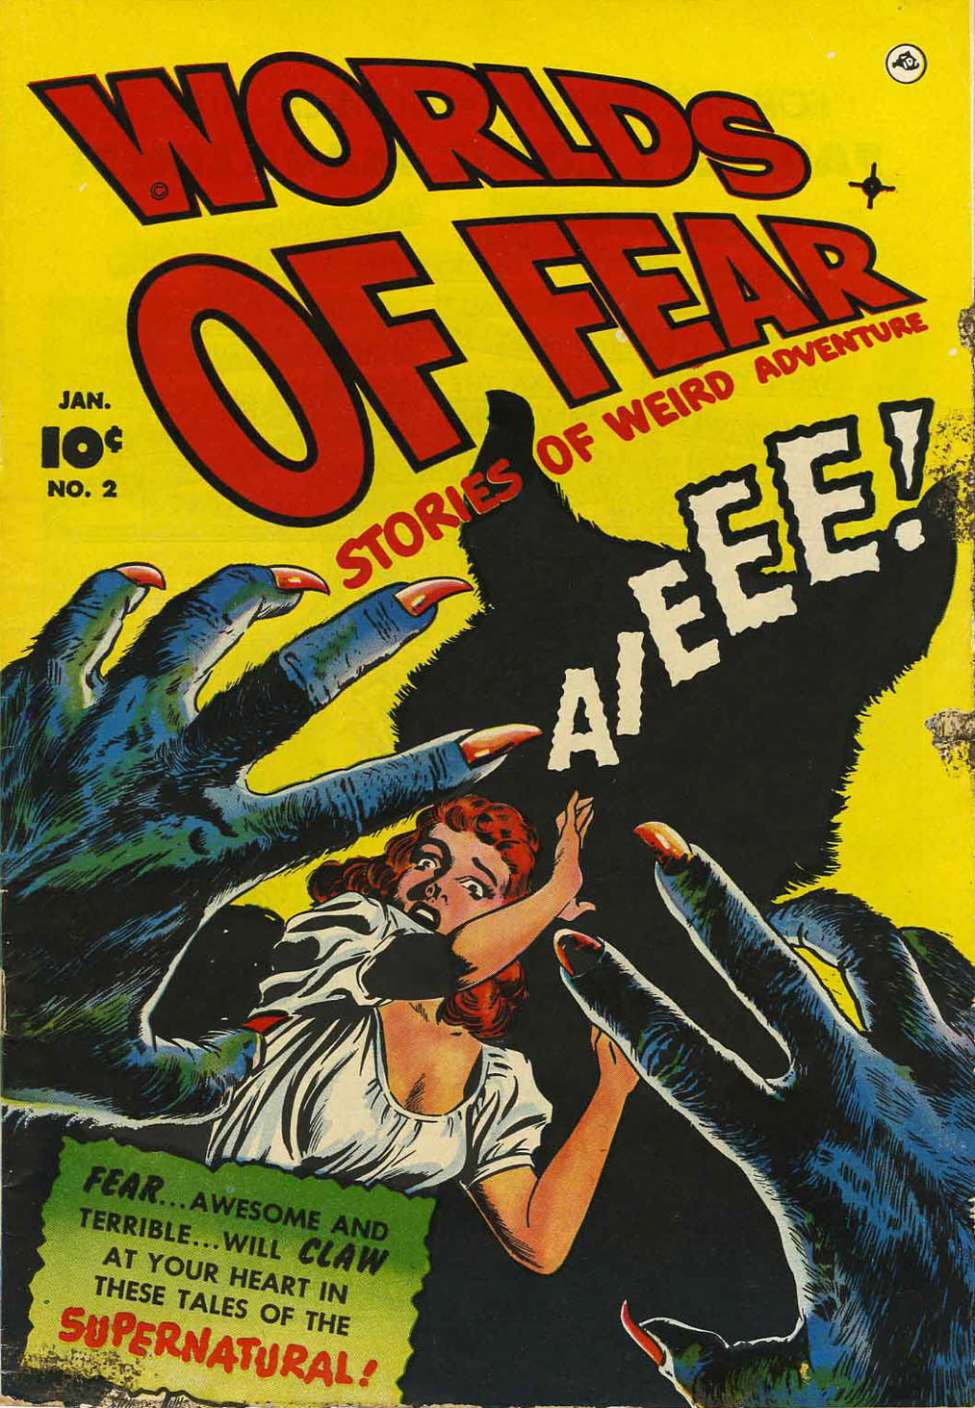 Comic Book Cover For Worlds of Fear #2